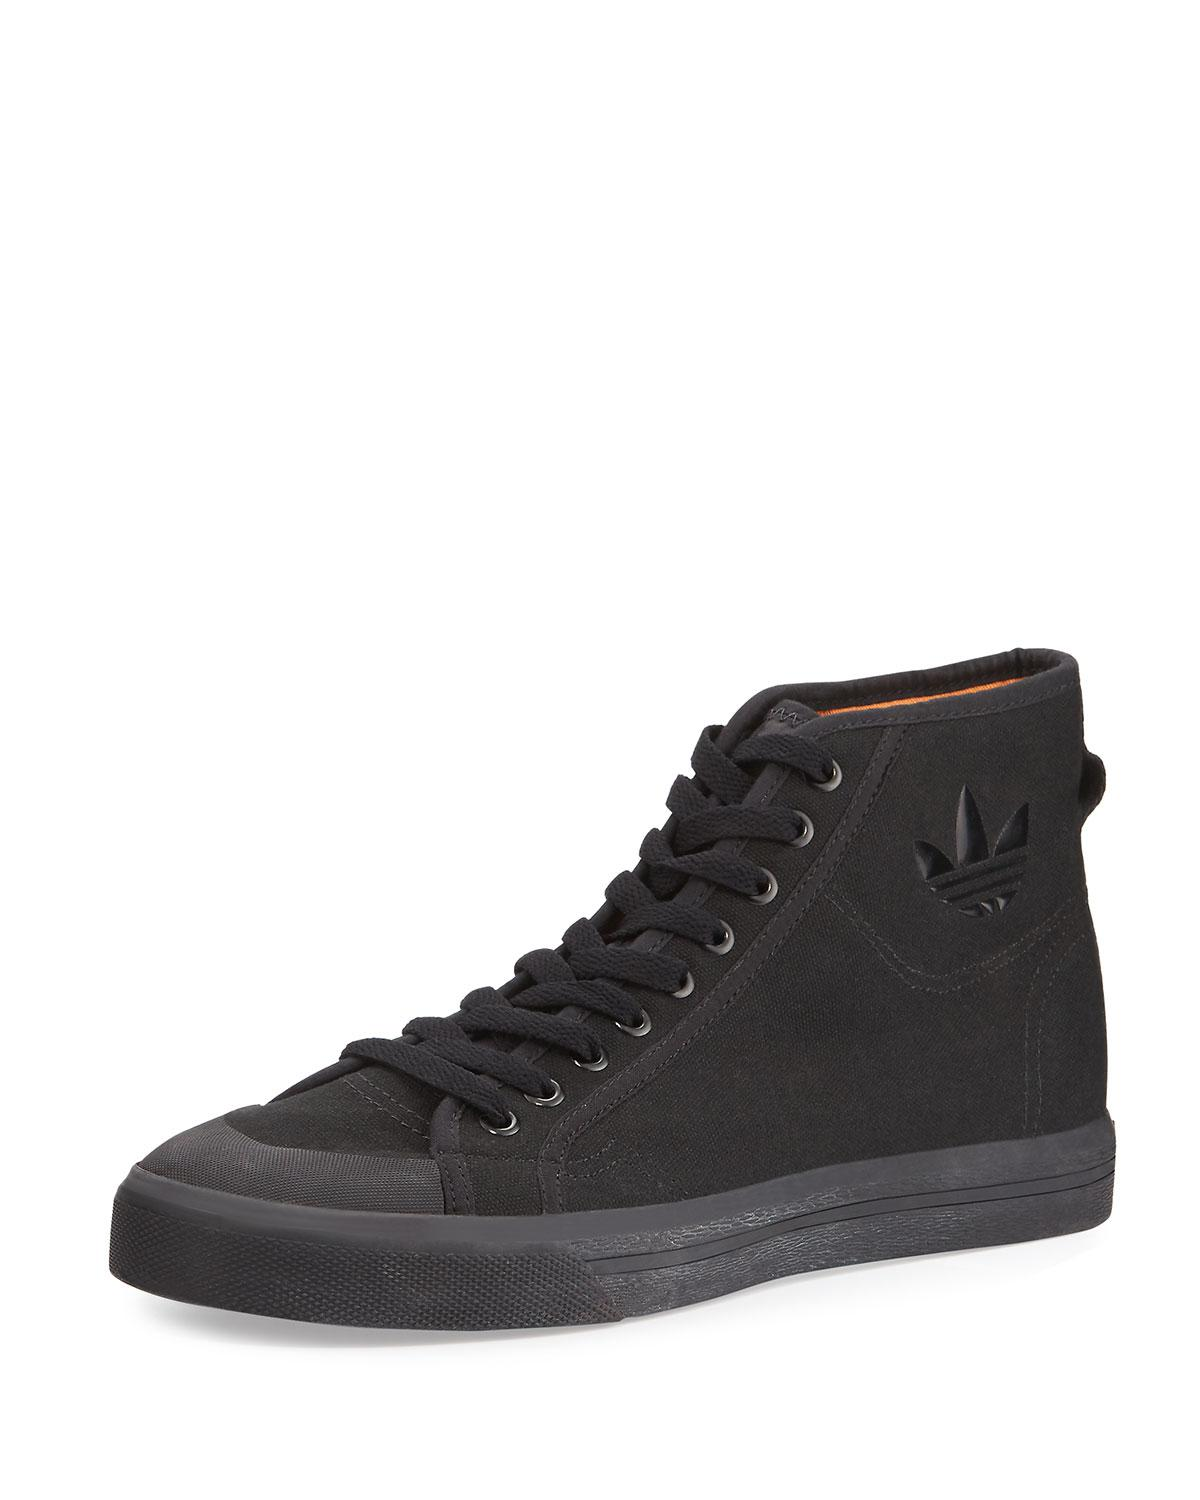 Adidas por Raf Simons espíritu Canvas High Top zapatilla de hombre en color negro